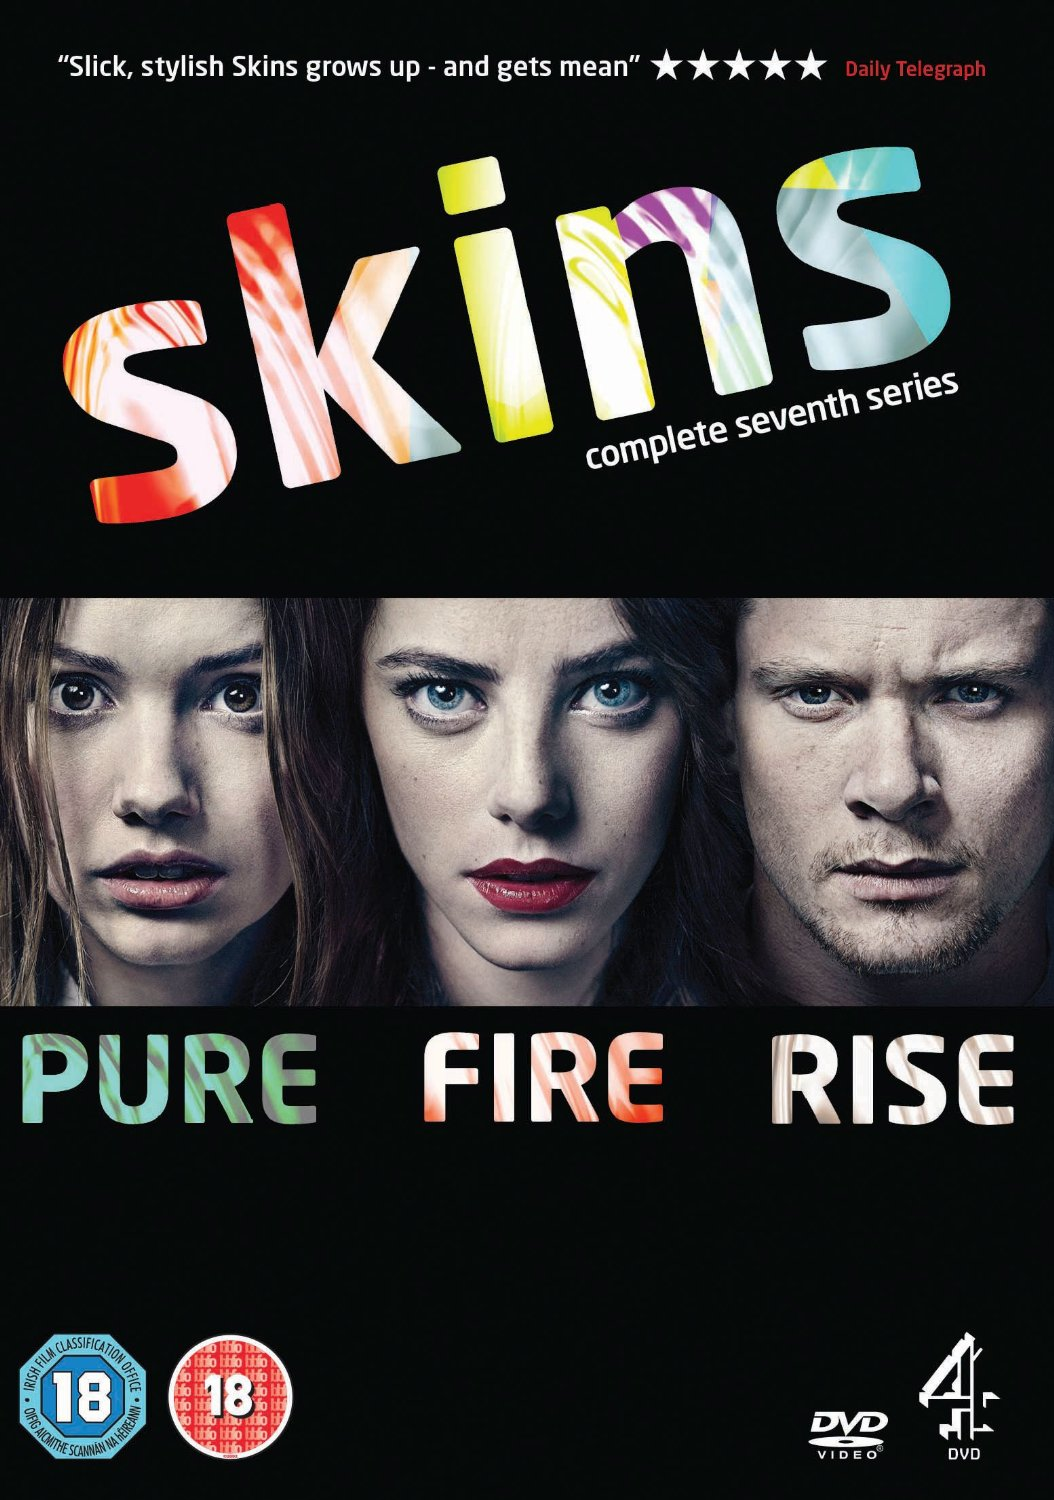 Skins series 4 episode 6 cast - Ring the bell movie deland